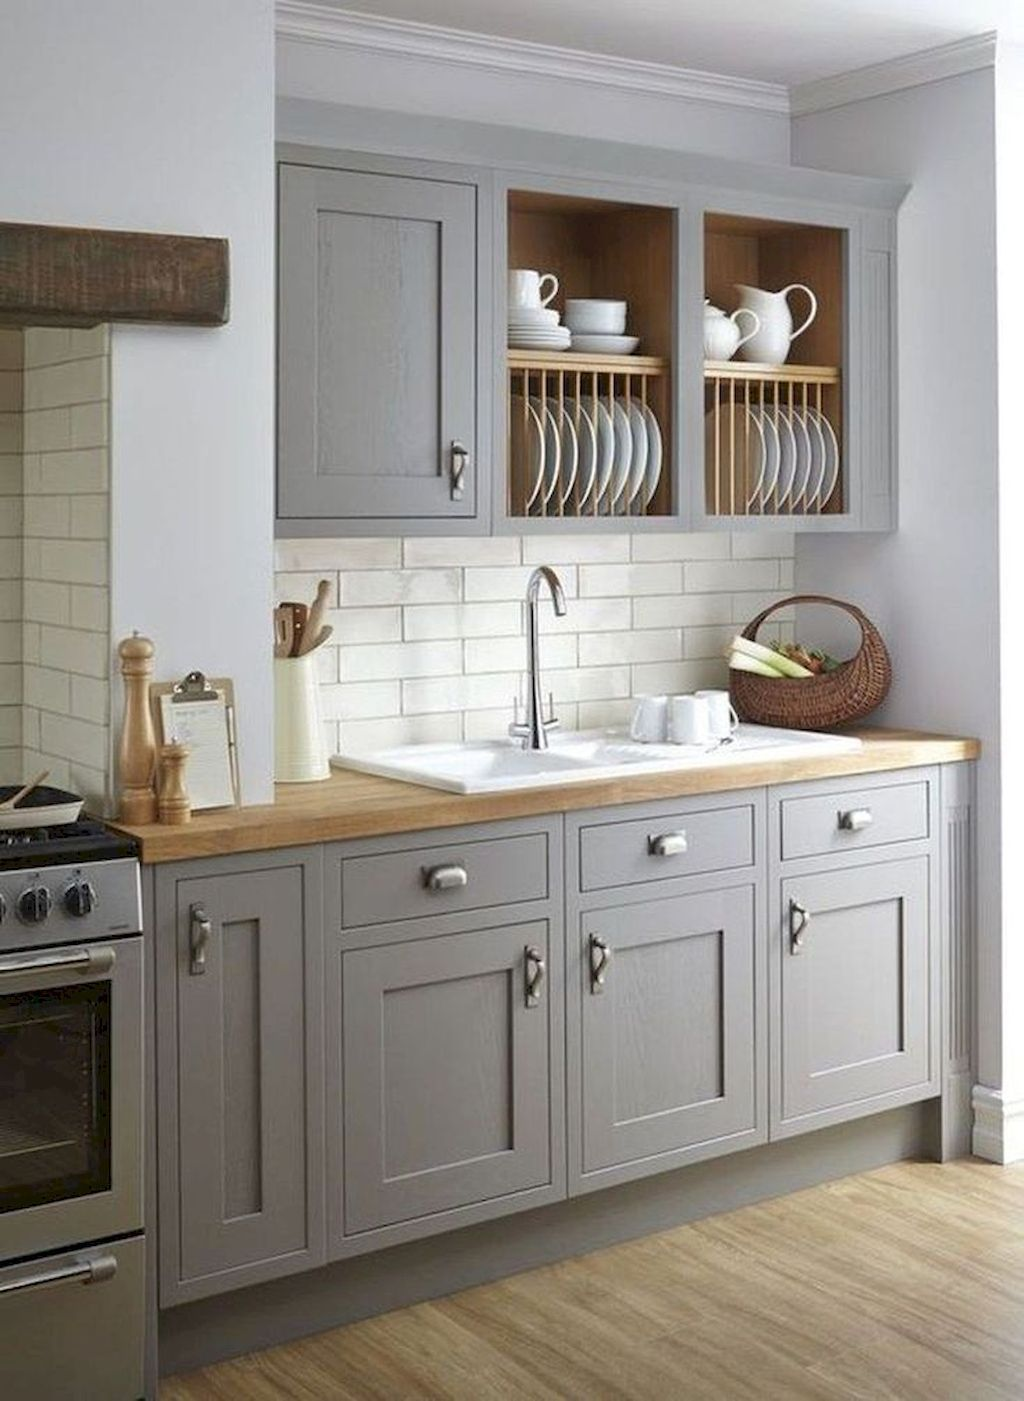 Best Kitchen Cabinets Ideas And Make Over (62 | Kitchens